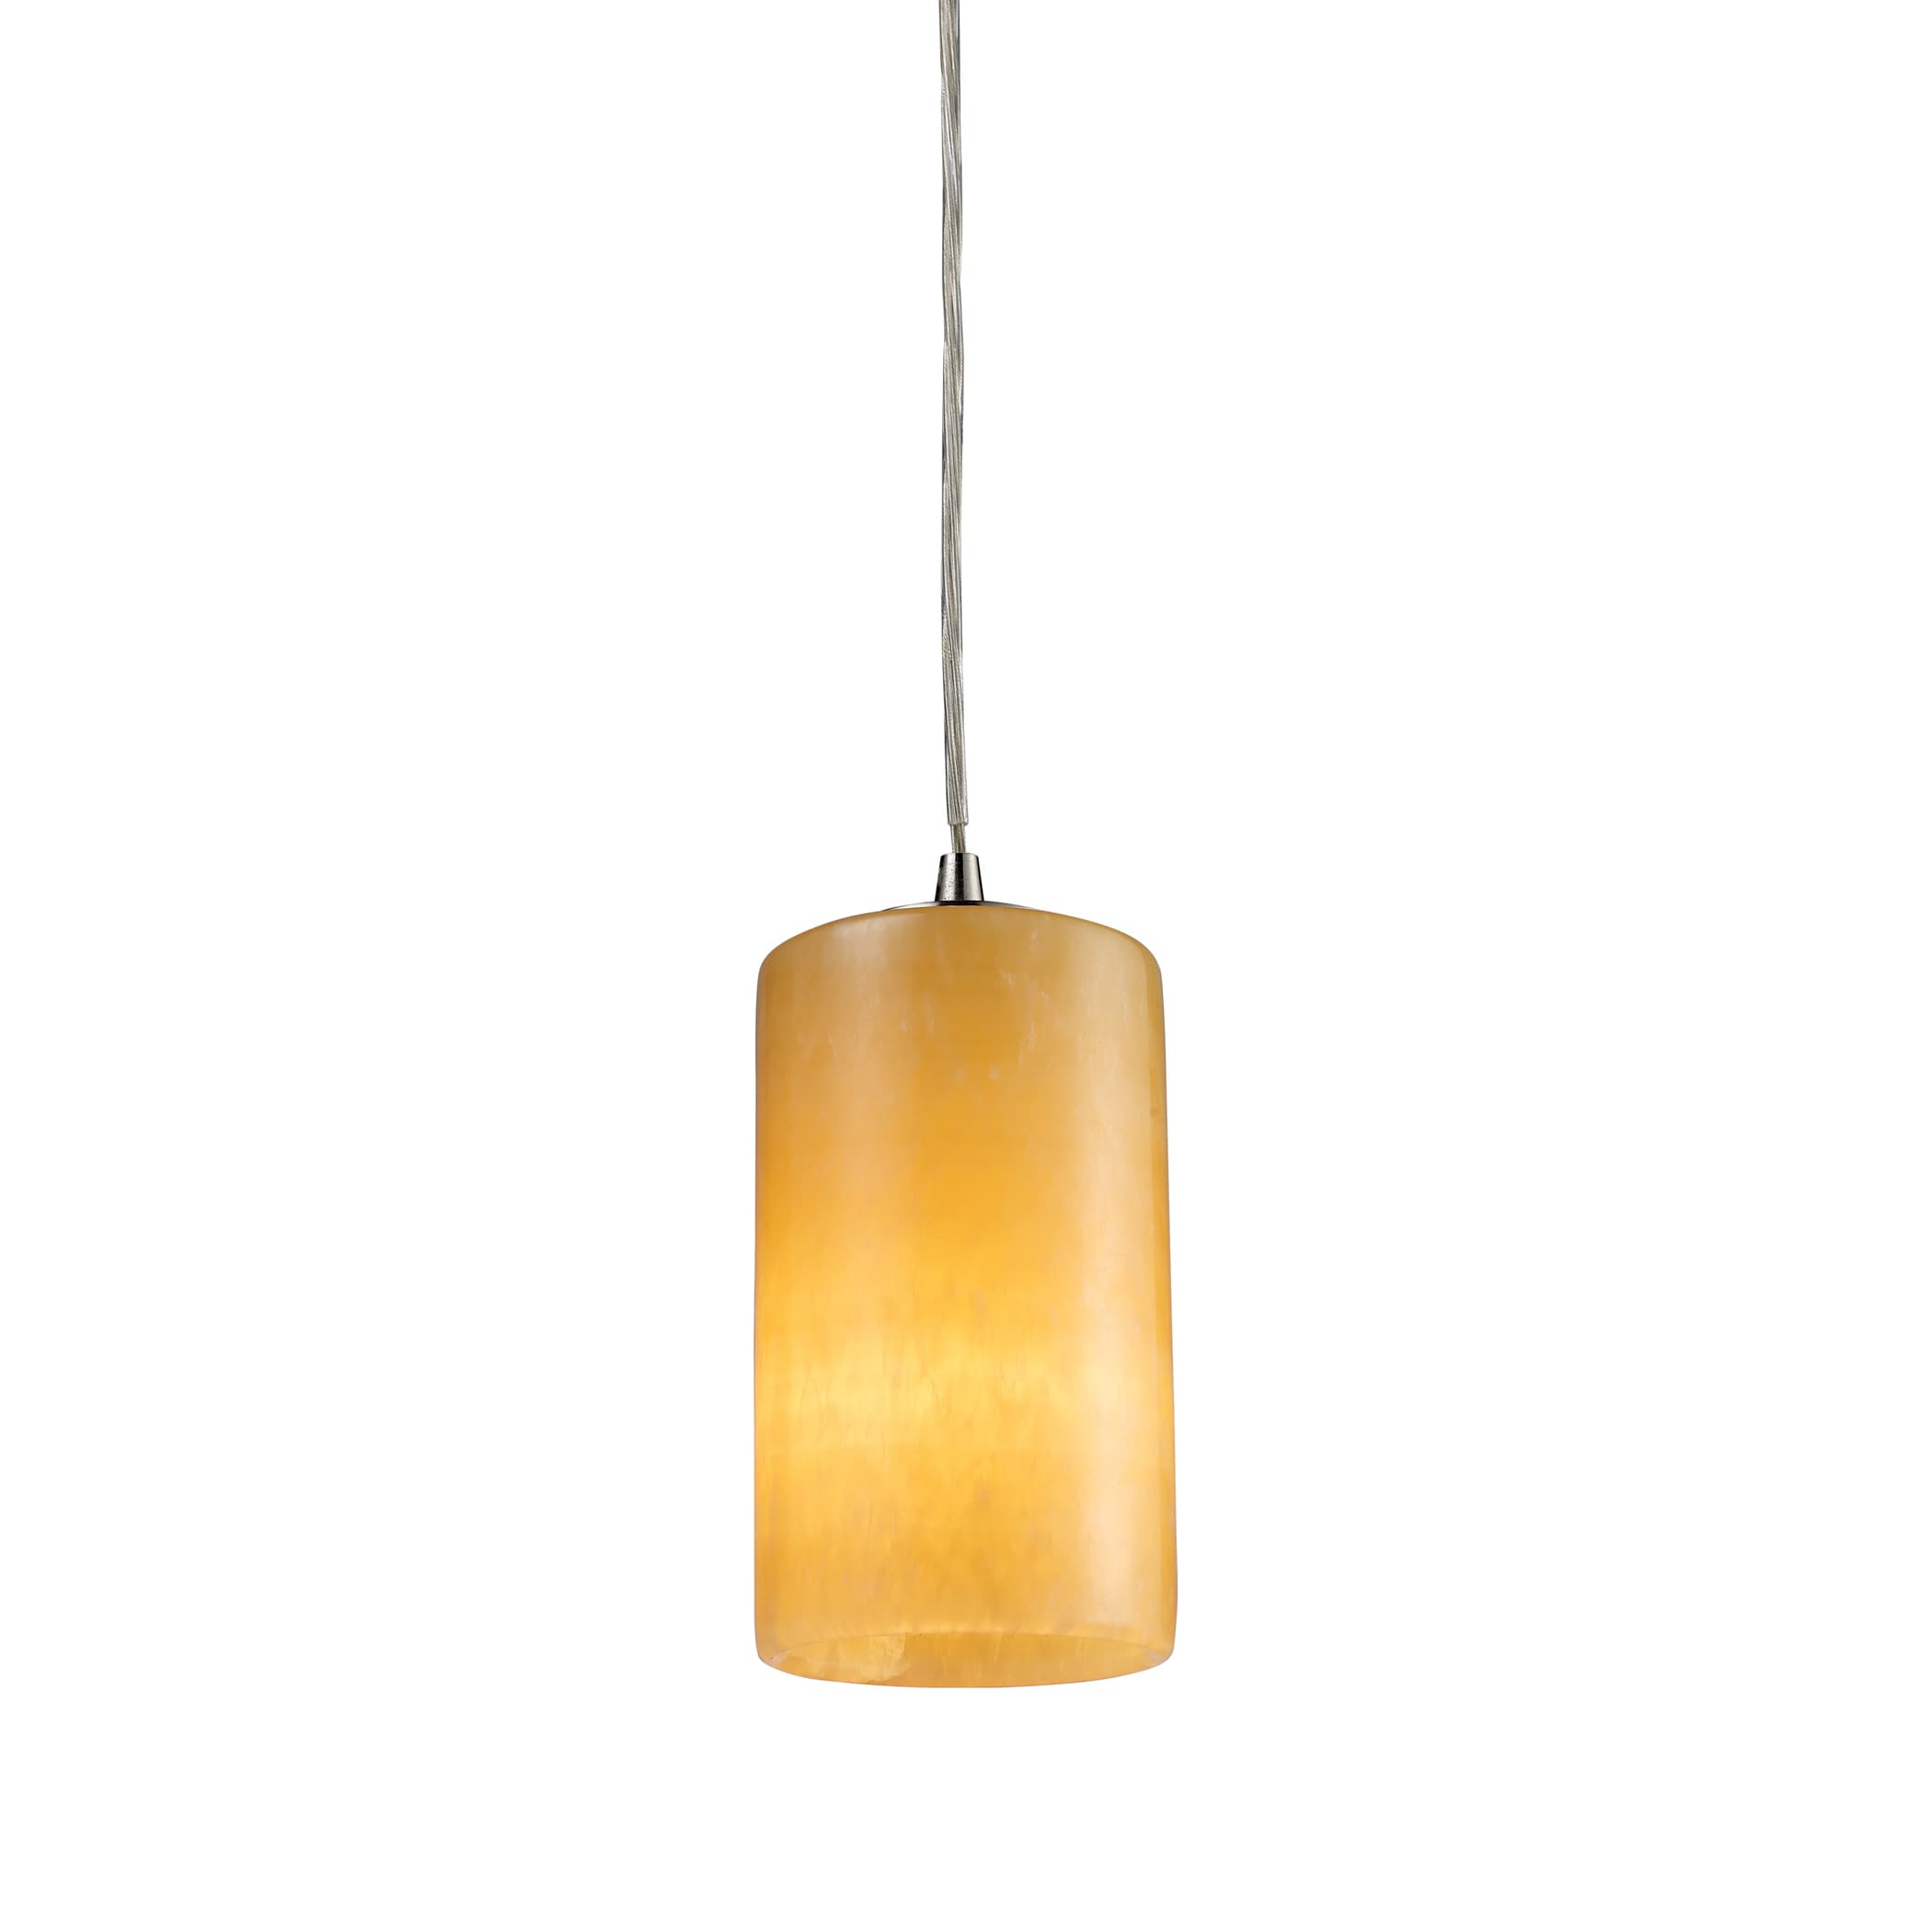 ELK LIGHTING Coletta Single-light Genuine Stone Satin Nic...